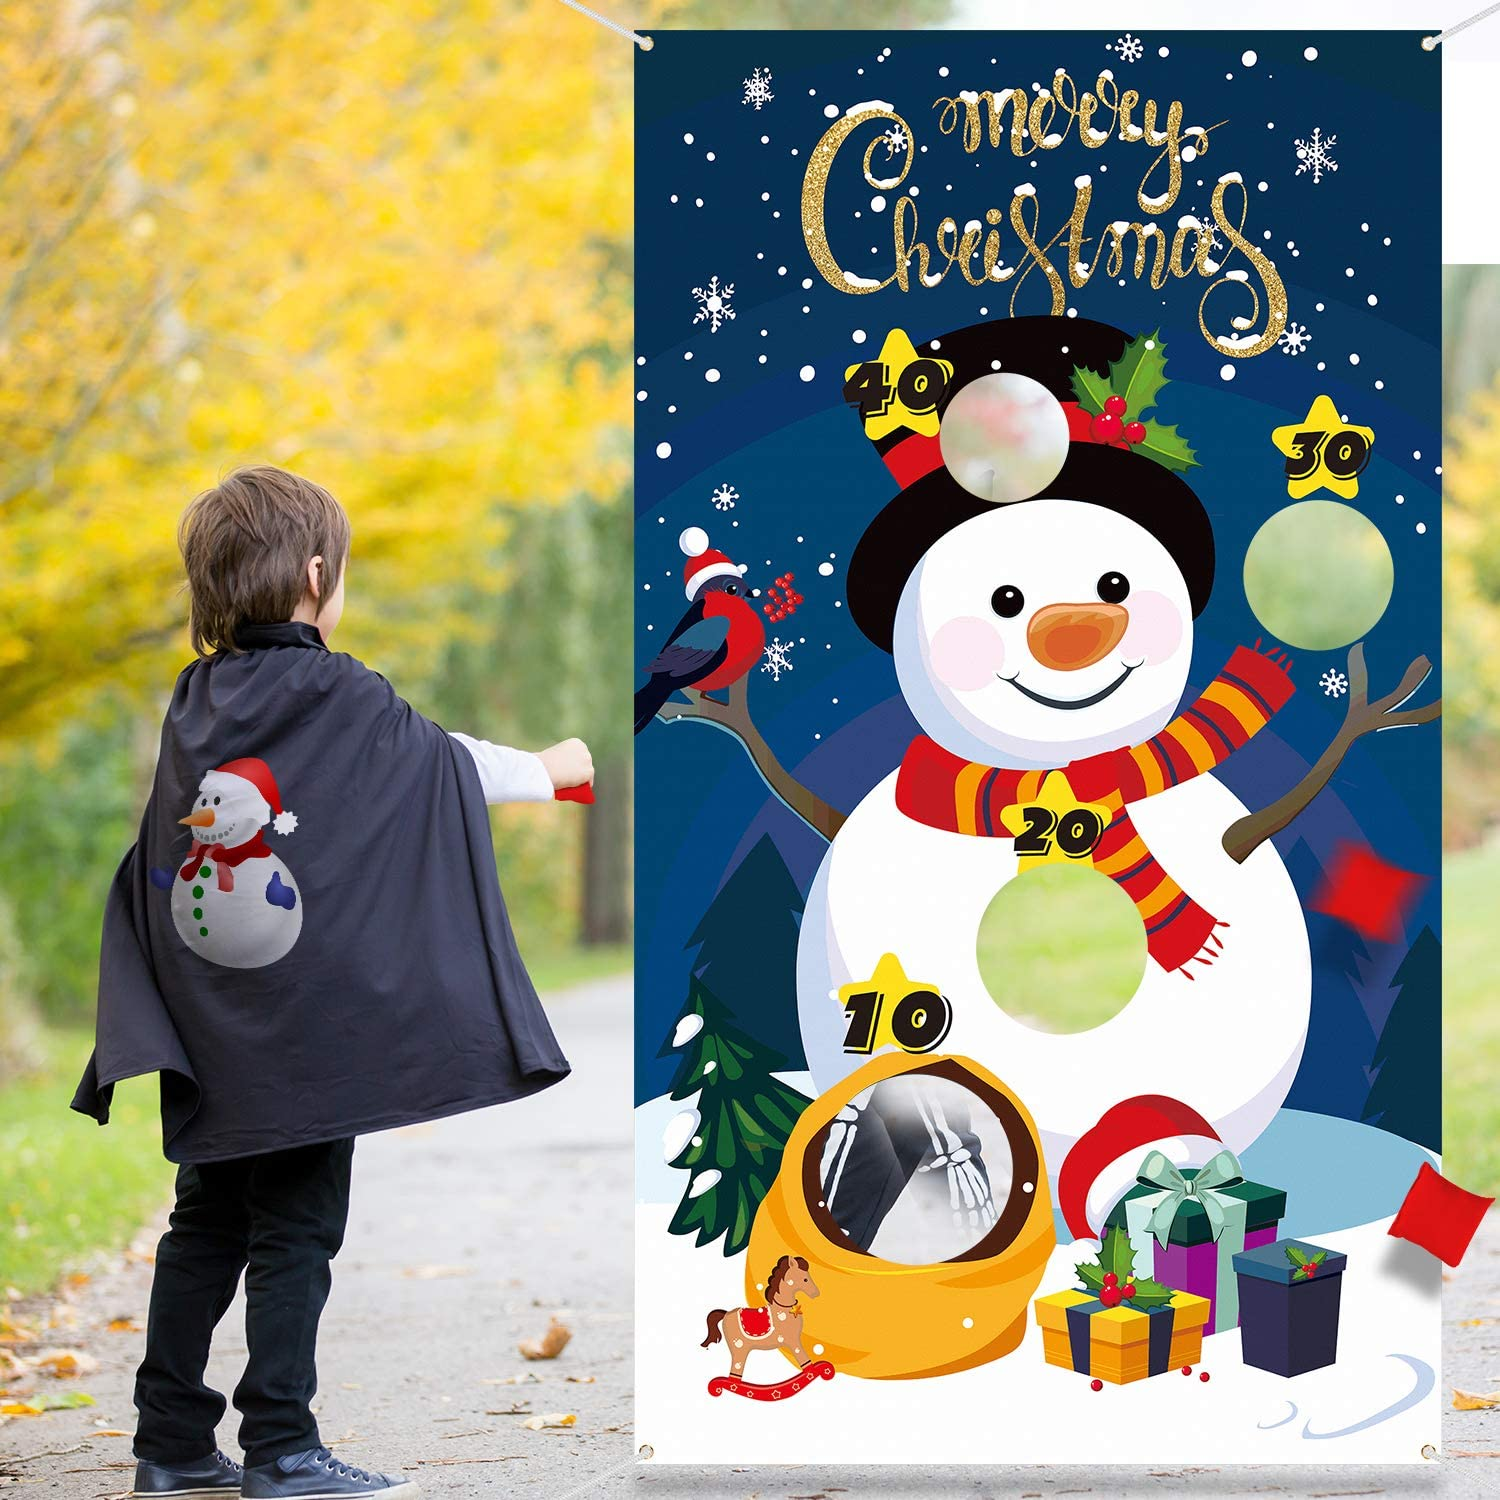 Amazon Com Christmas Snowman Toss Game With 3 Bean Bags Fun Indoor Outdoor Game For Kids And Adults In Christmas Party Activities Great Christmas Decorations And Supplies Christmas Snowman Toys Games